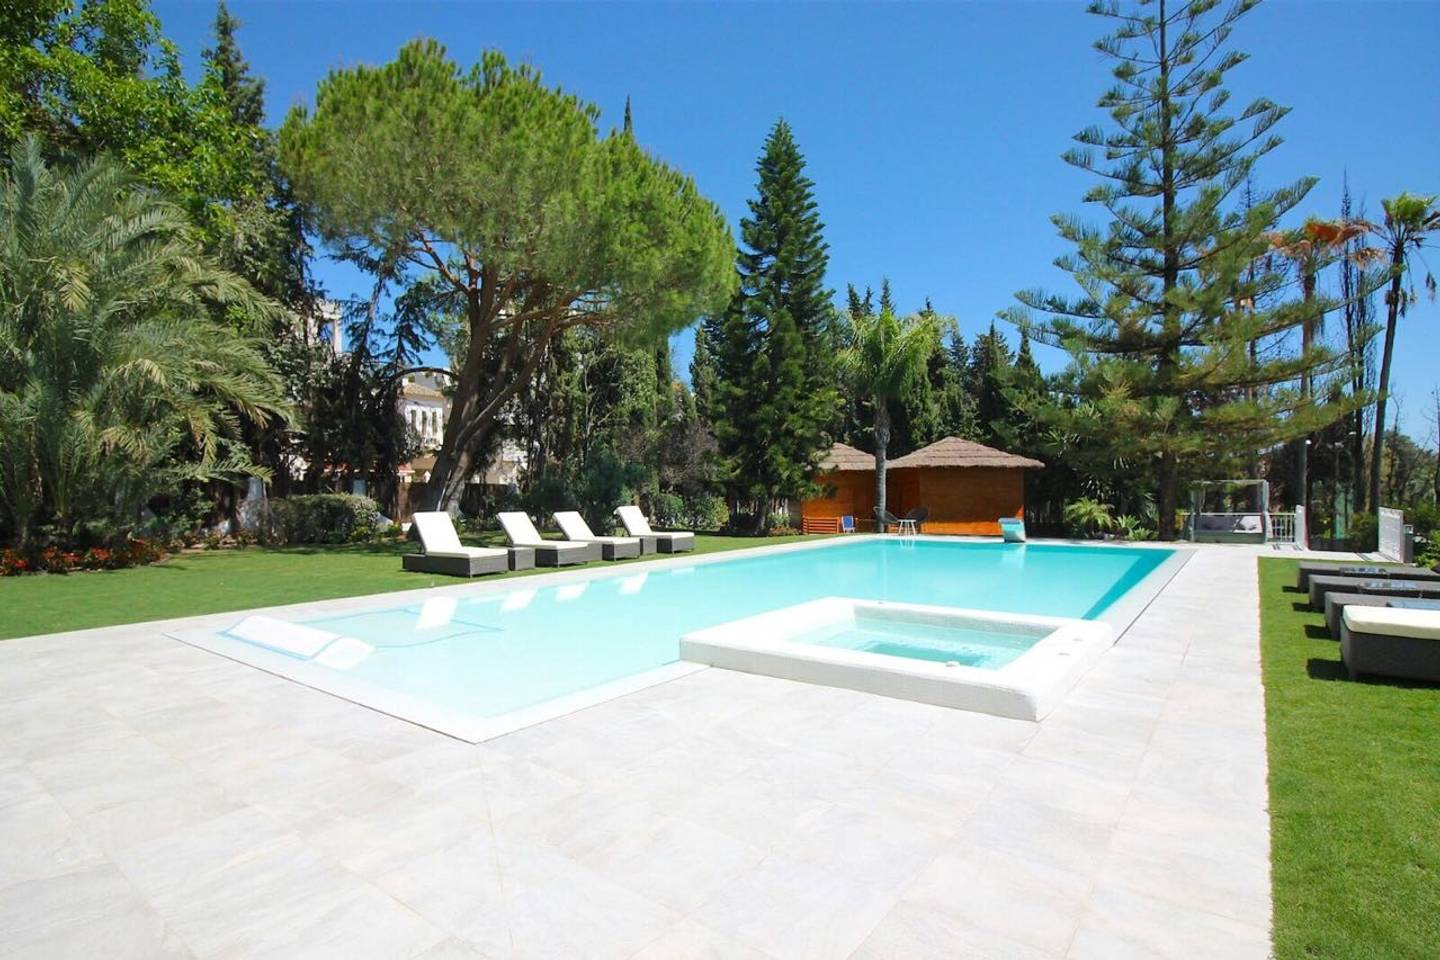 Apartment CHIC Spanish Villa pool   spa next to golf cours photo 28511023